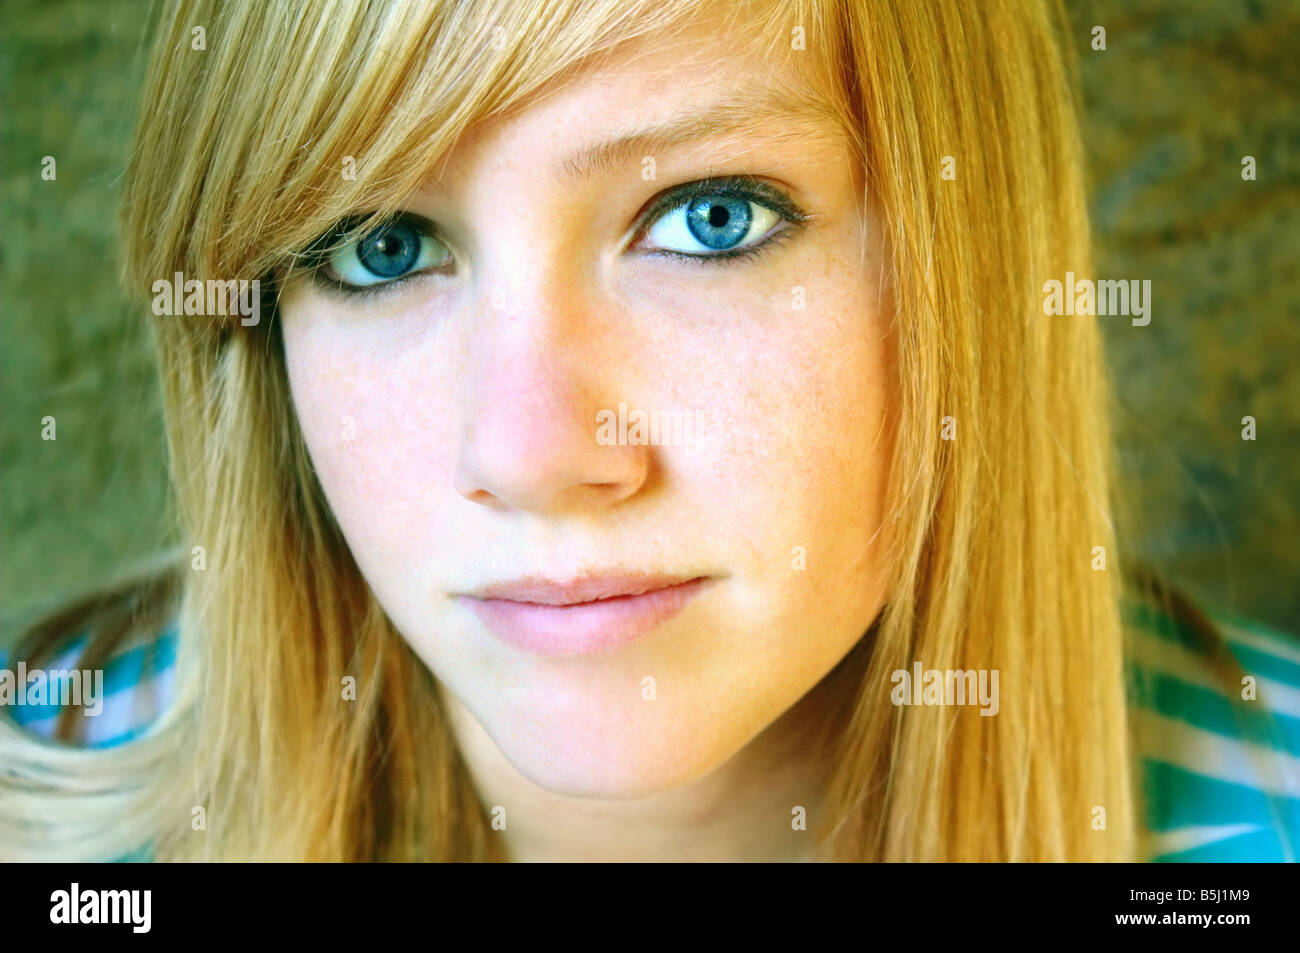 USA This is a typical teenage expression from a young lady with mesmerizing eyes - Stock Image